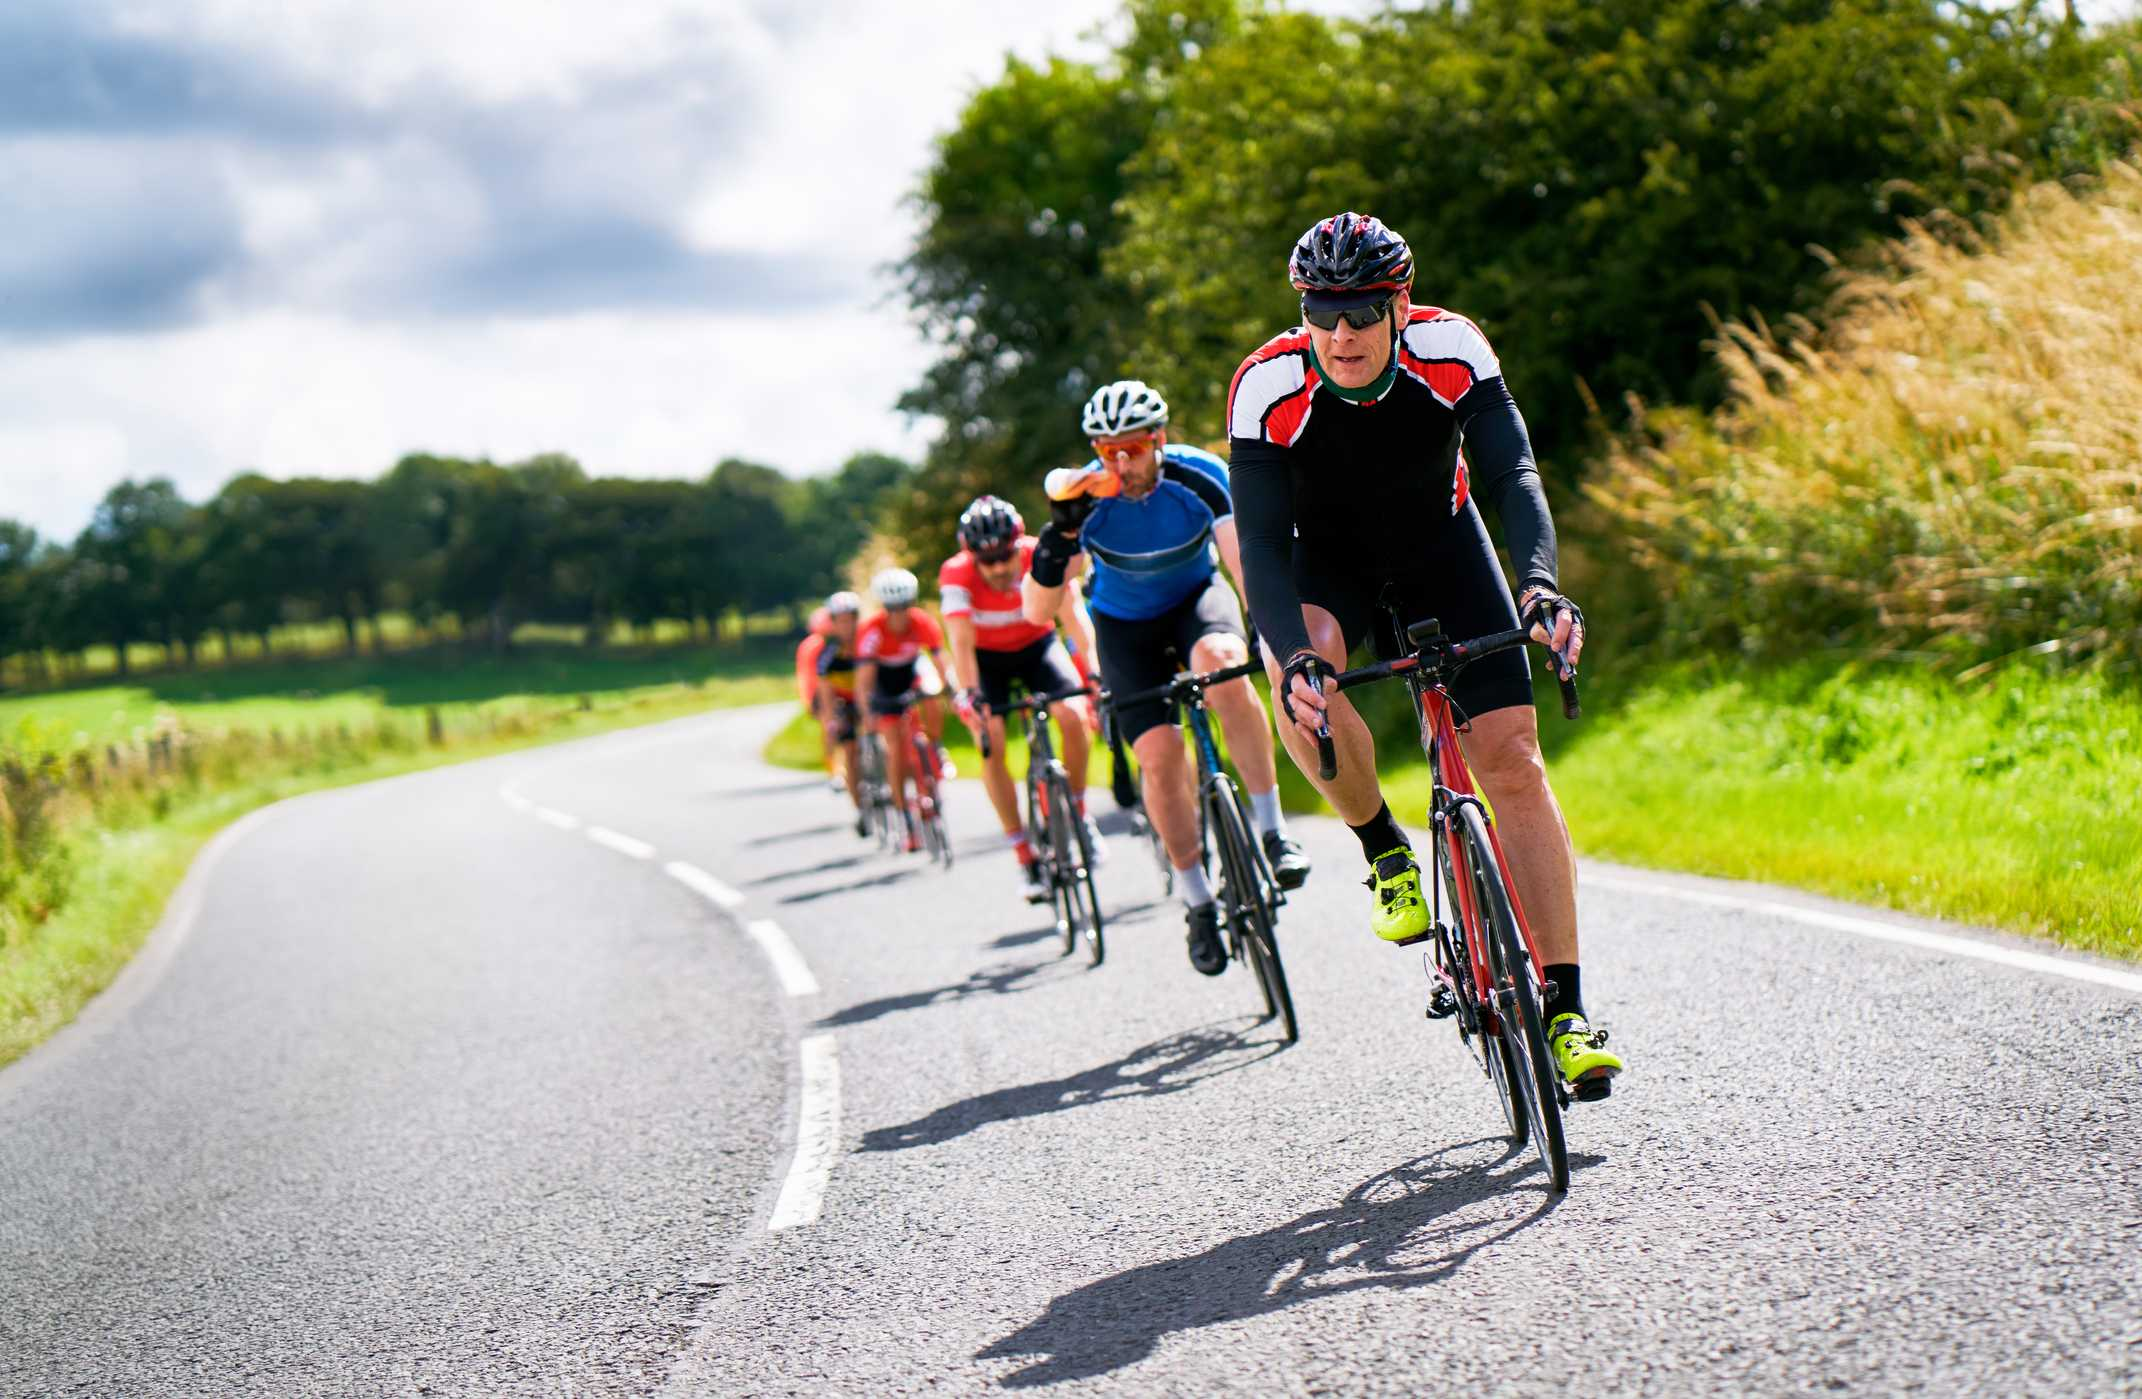 Cycling, A Sport Or Means Of Transportation